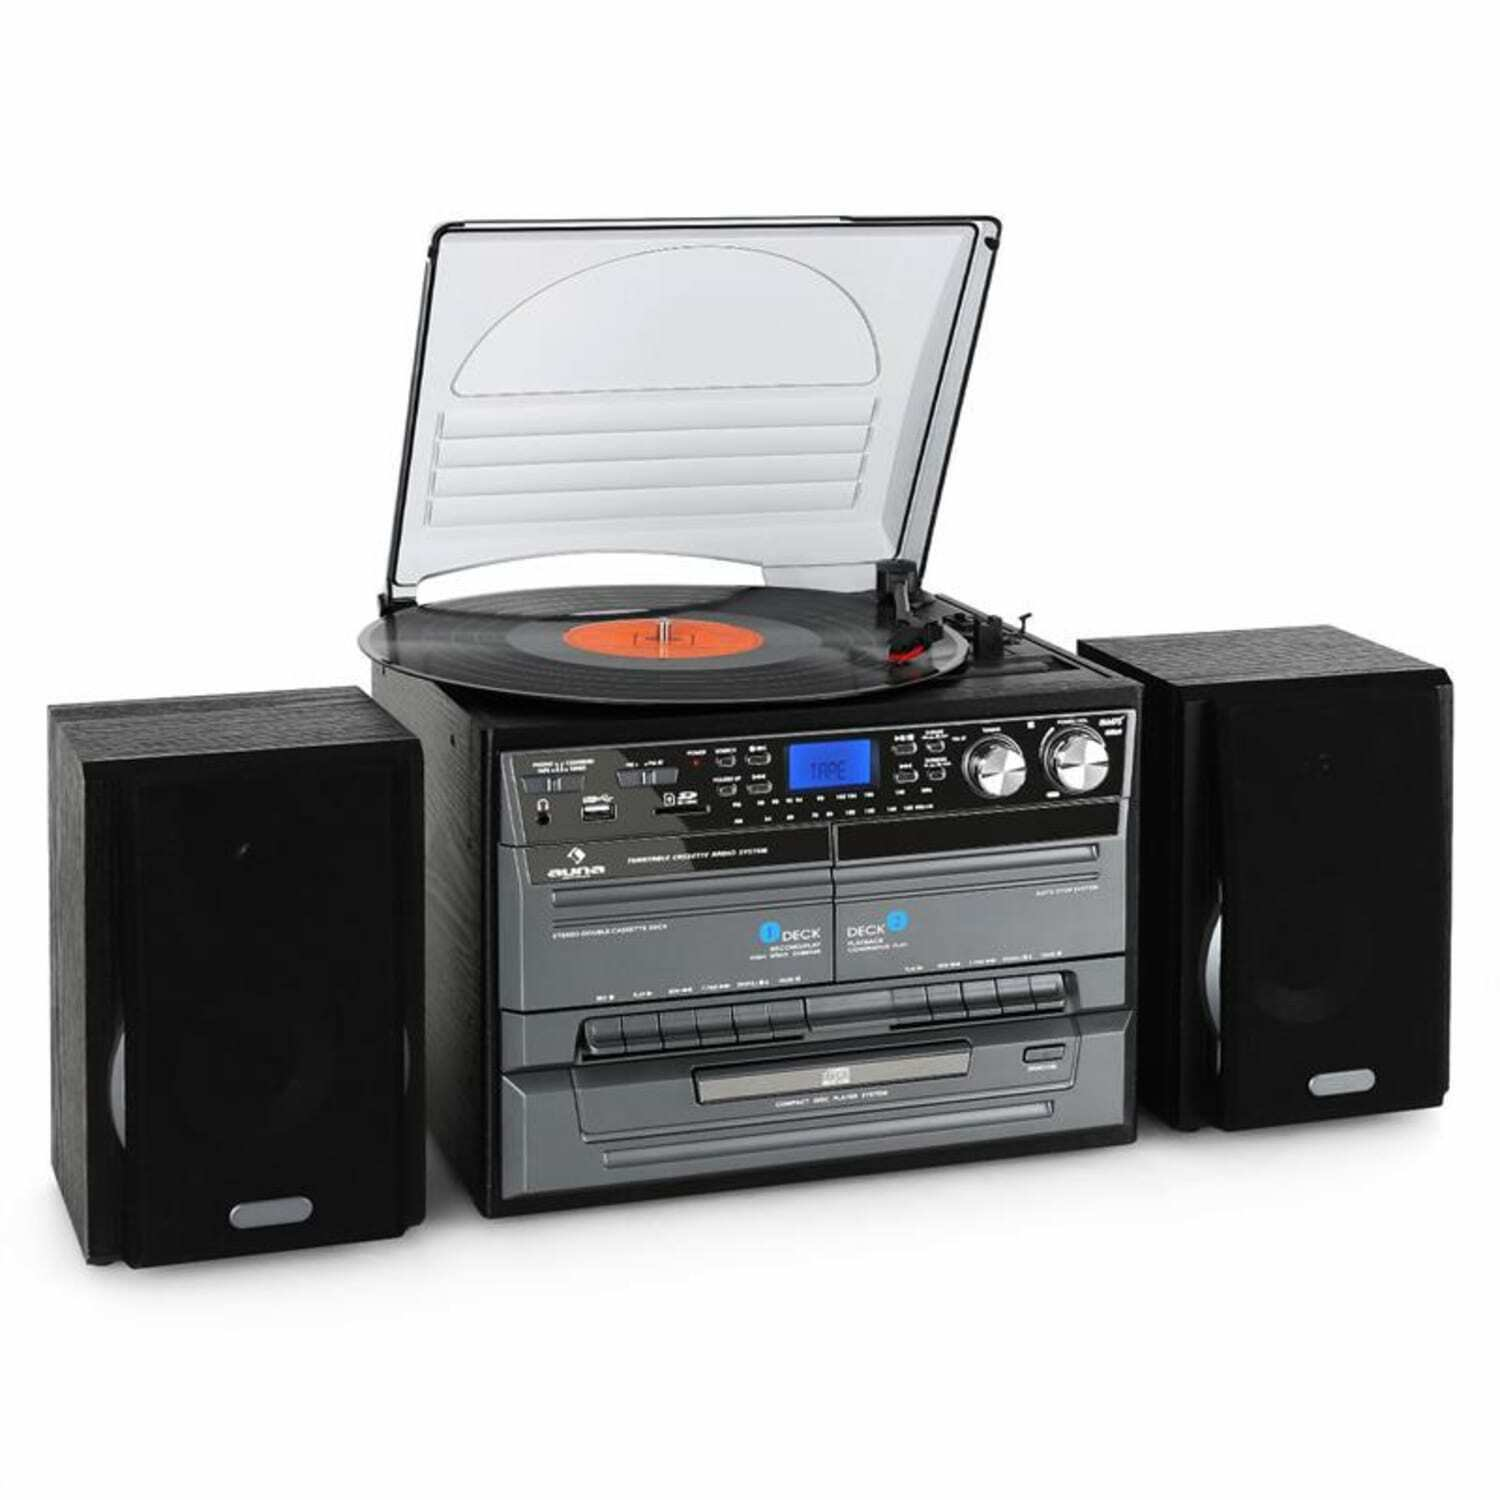 hifi platten spieler usb recording cd mp3 stereo kompakt anlage radio kassette eur 119 99. Black Bedroom Furniture Sets. Home Design Ideas